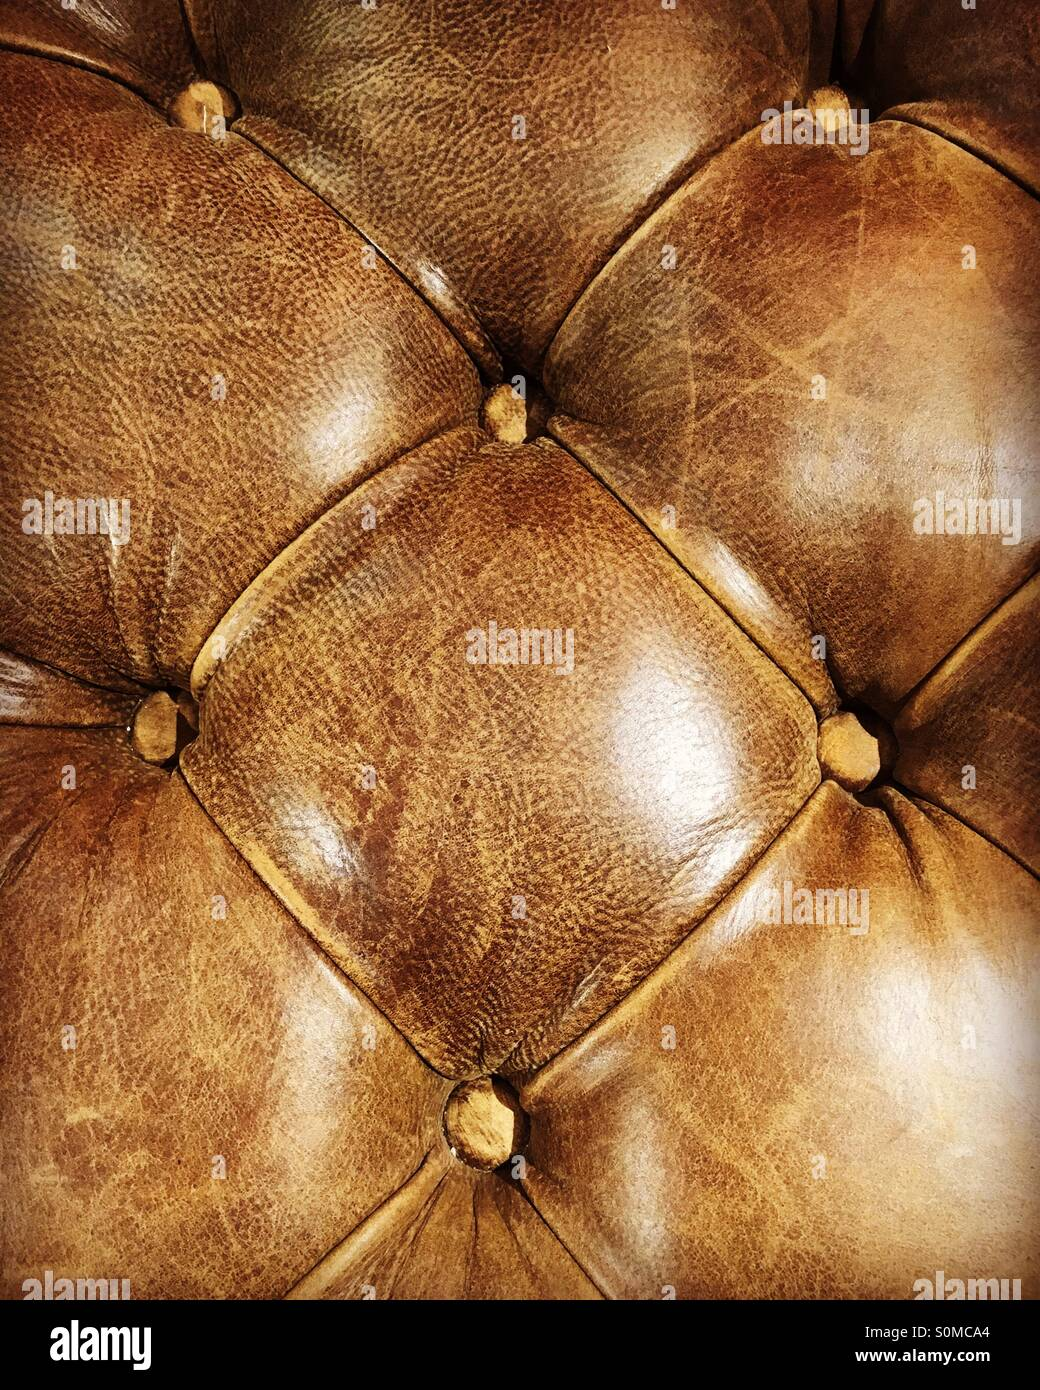 Close-up of a brown, leather Chesterfield seat. - Stock Image